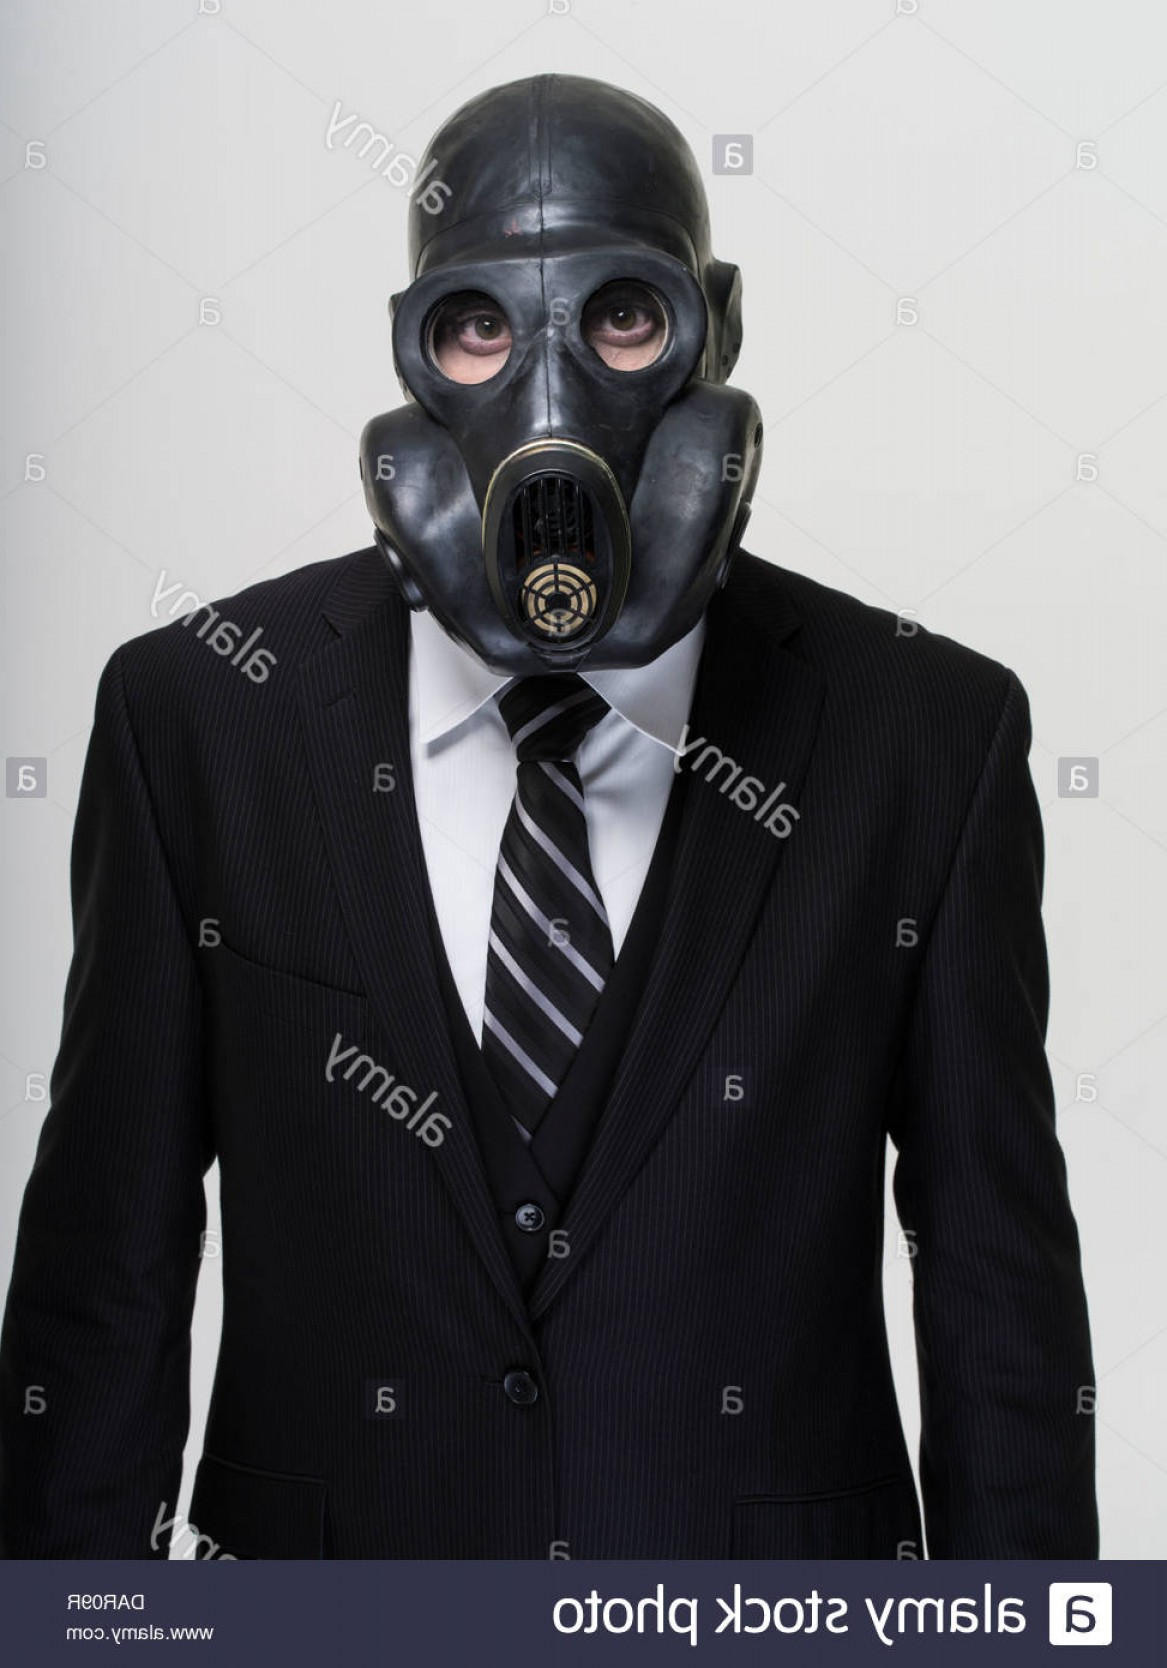 Gas Mask Suit And Tie Vector: Stock Photo Businessman In Suit And Tie Wearing Gas Mask Toxic Banking